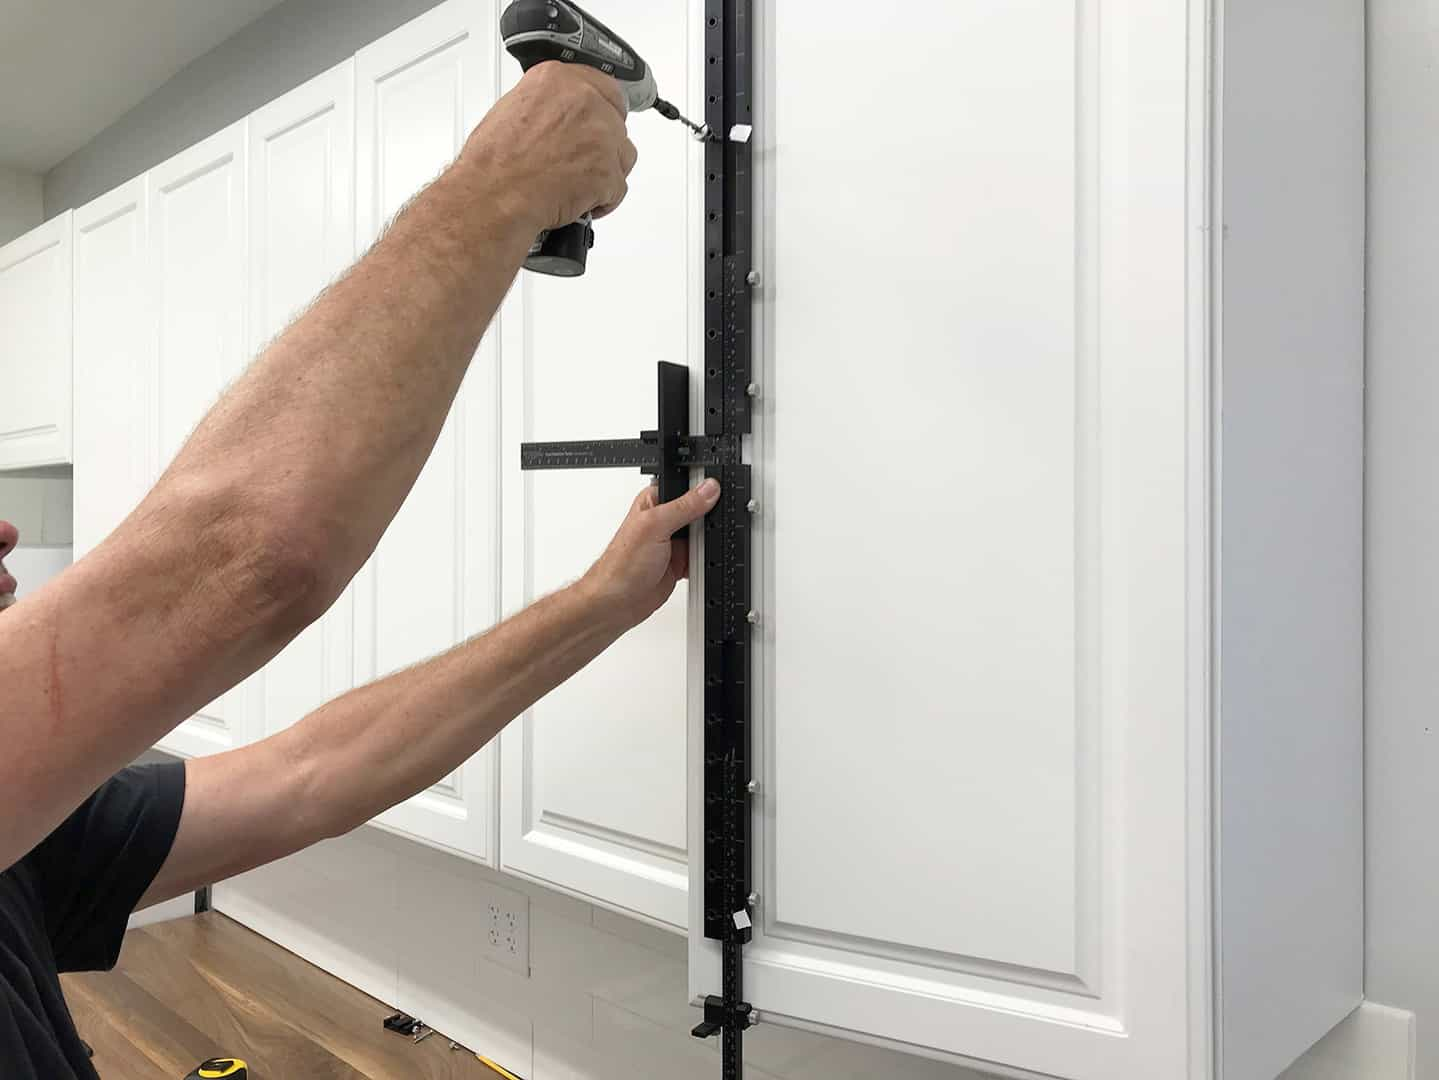 long handle installation on tall cabinet doors with TP-1935 Cabinet Hardware Jig (step 11)